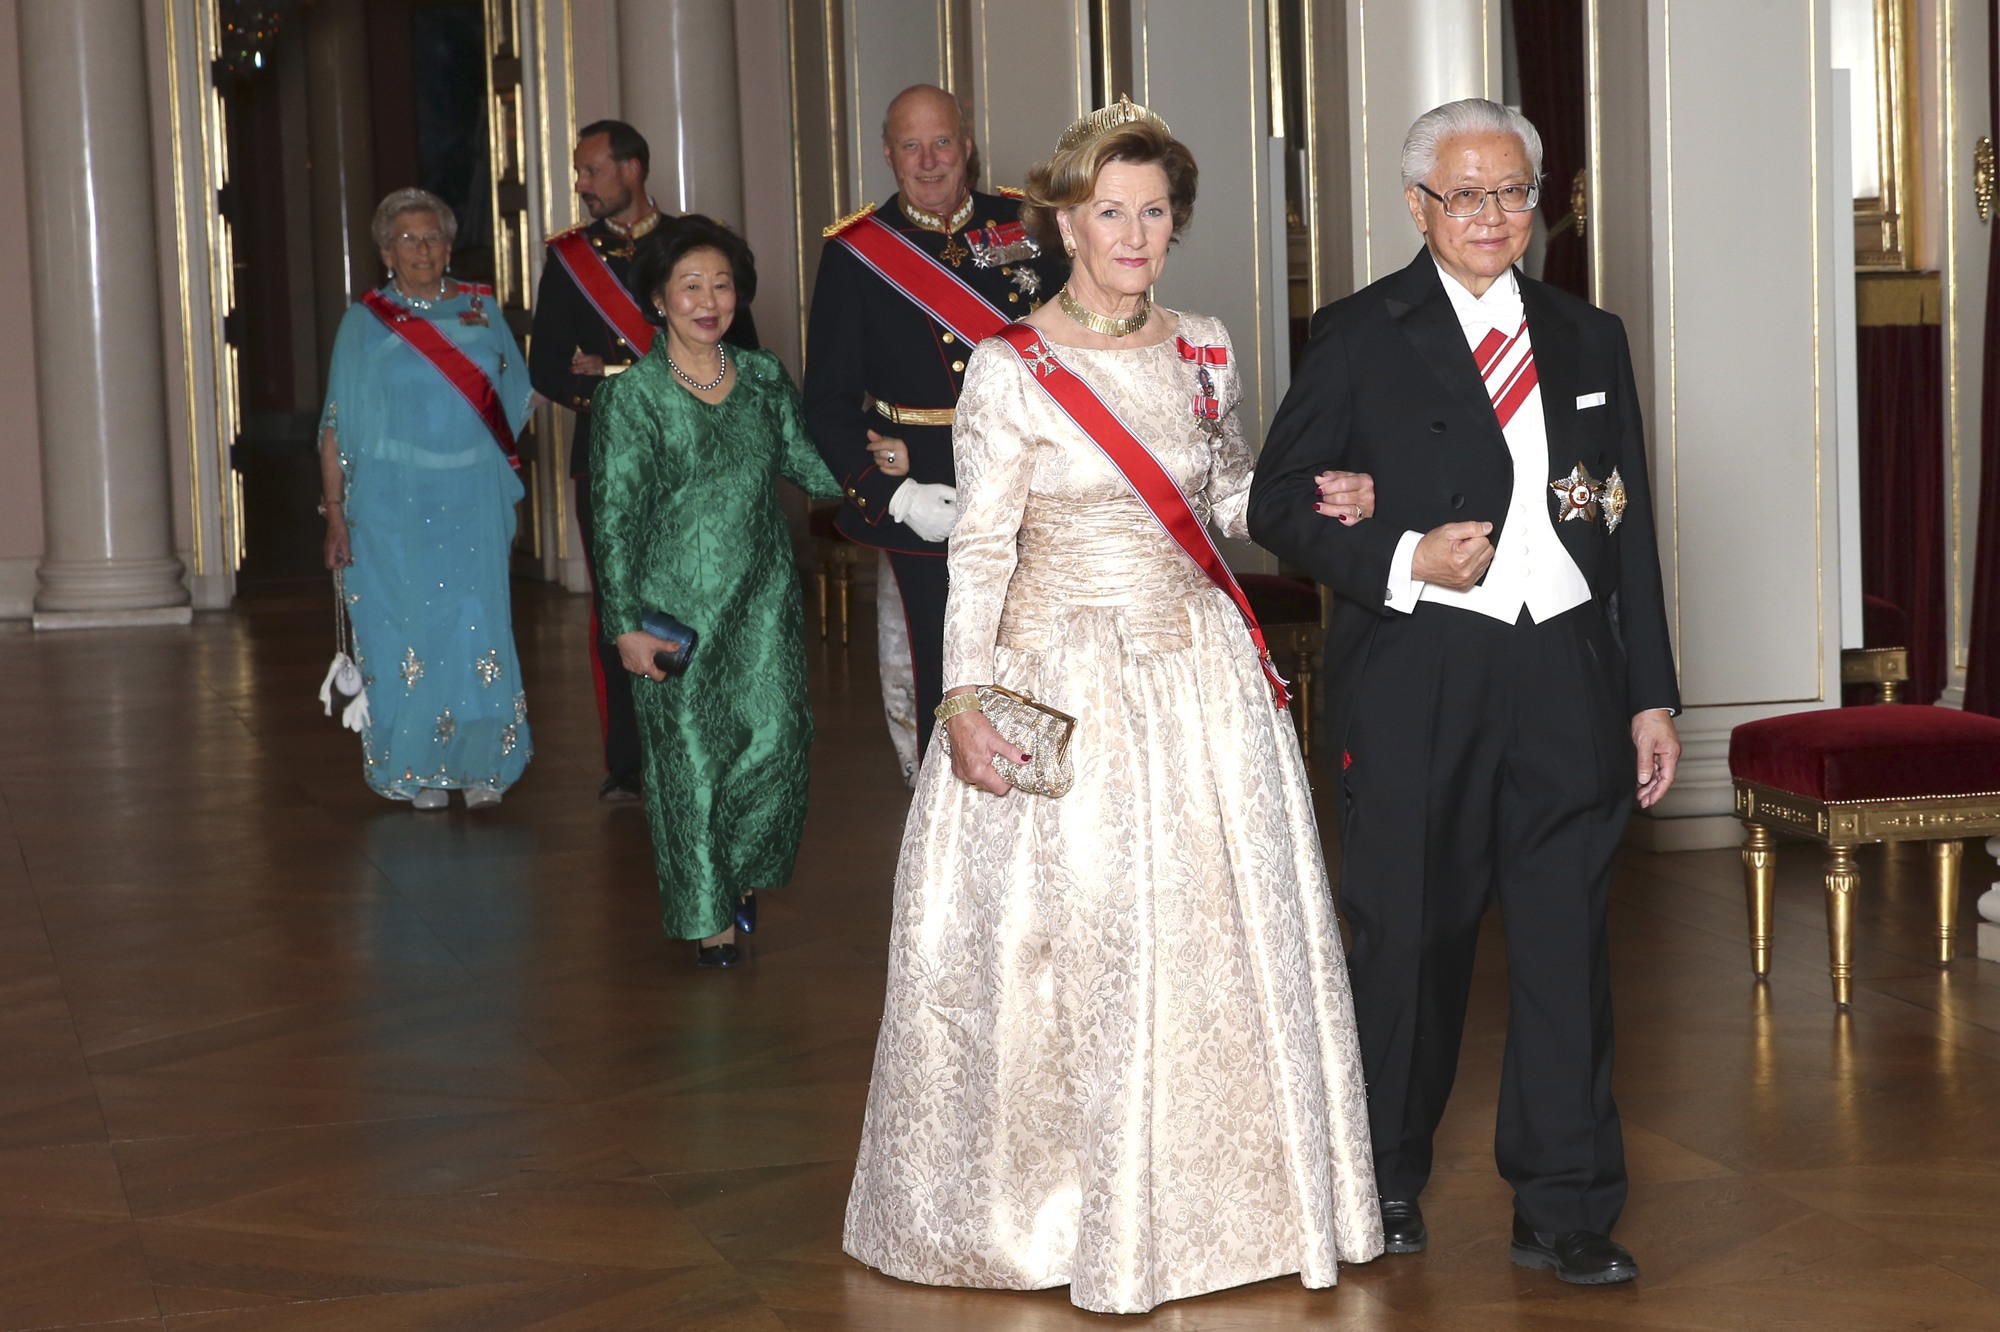 Oslo, Norway 20161010. State visit from Singapore.  Queen Sonja with Singapore's President Tony Tan Keng Yam on the way to a gala dinner at the Royal Palace in honor of the presidential couple visits. Photo: Vidar Ruud / NTB scanpix